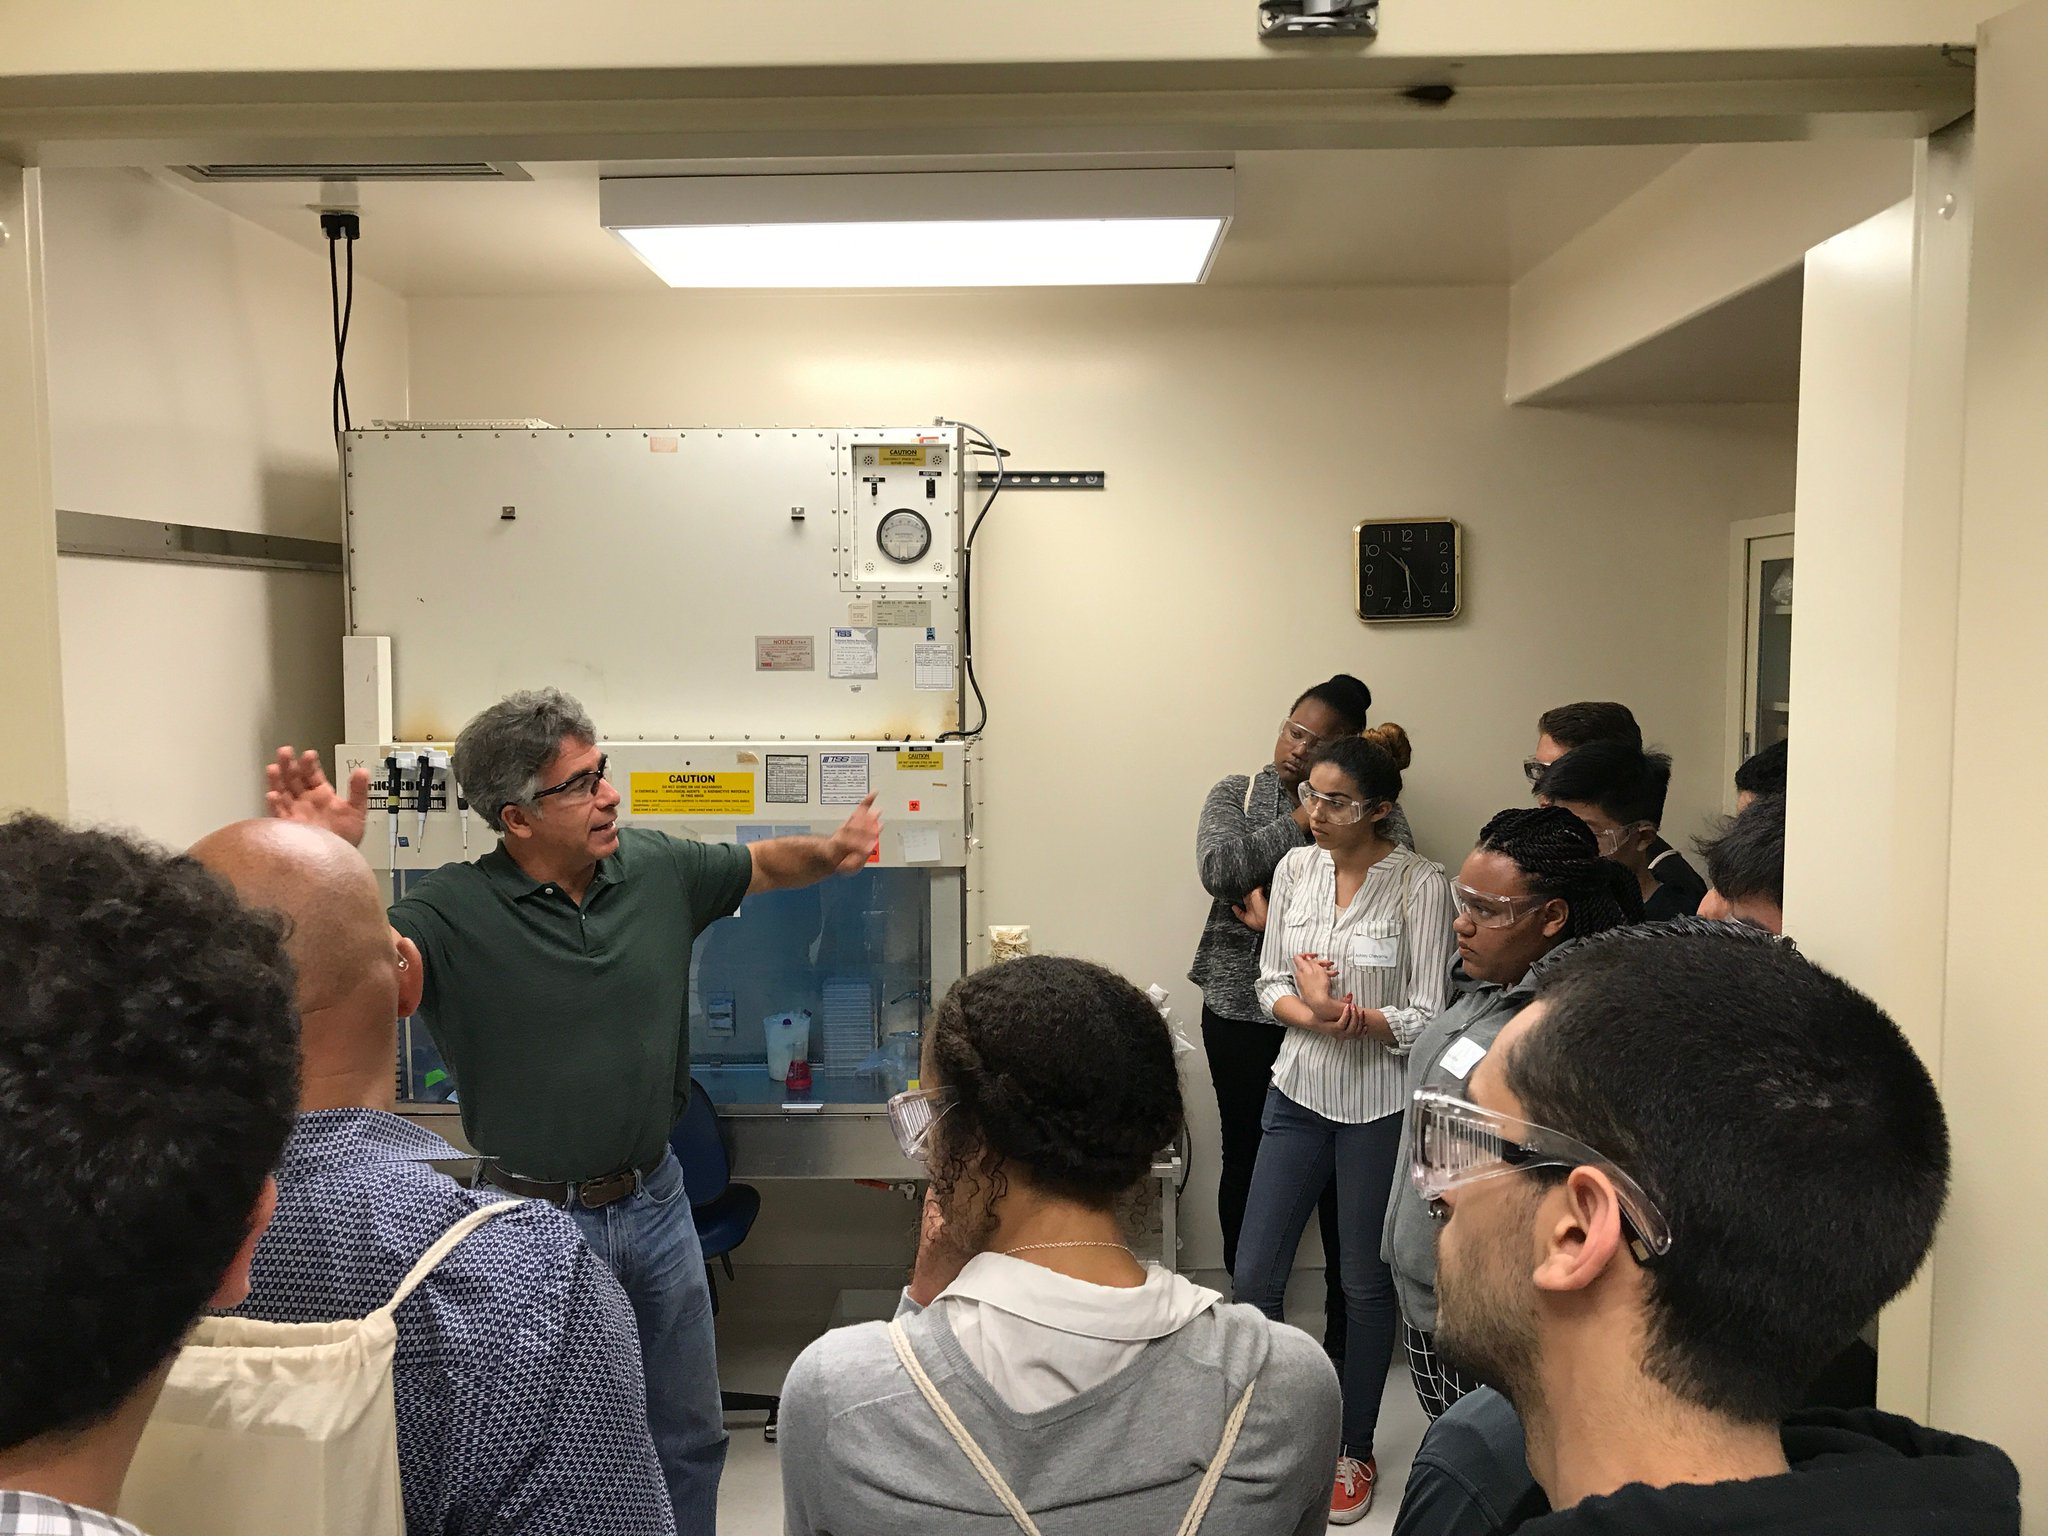 Paul Yaswen teaching #EastBay HS students abt methods of detecting environmental carcinogens #BioEGSB #BioSciNextGen https://t.co/ZPr0ExdCjw https://t.co/rQ60zrnI6O